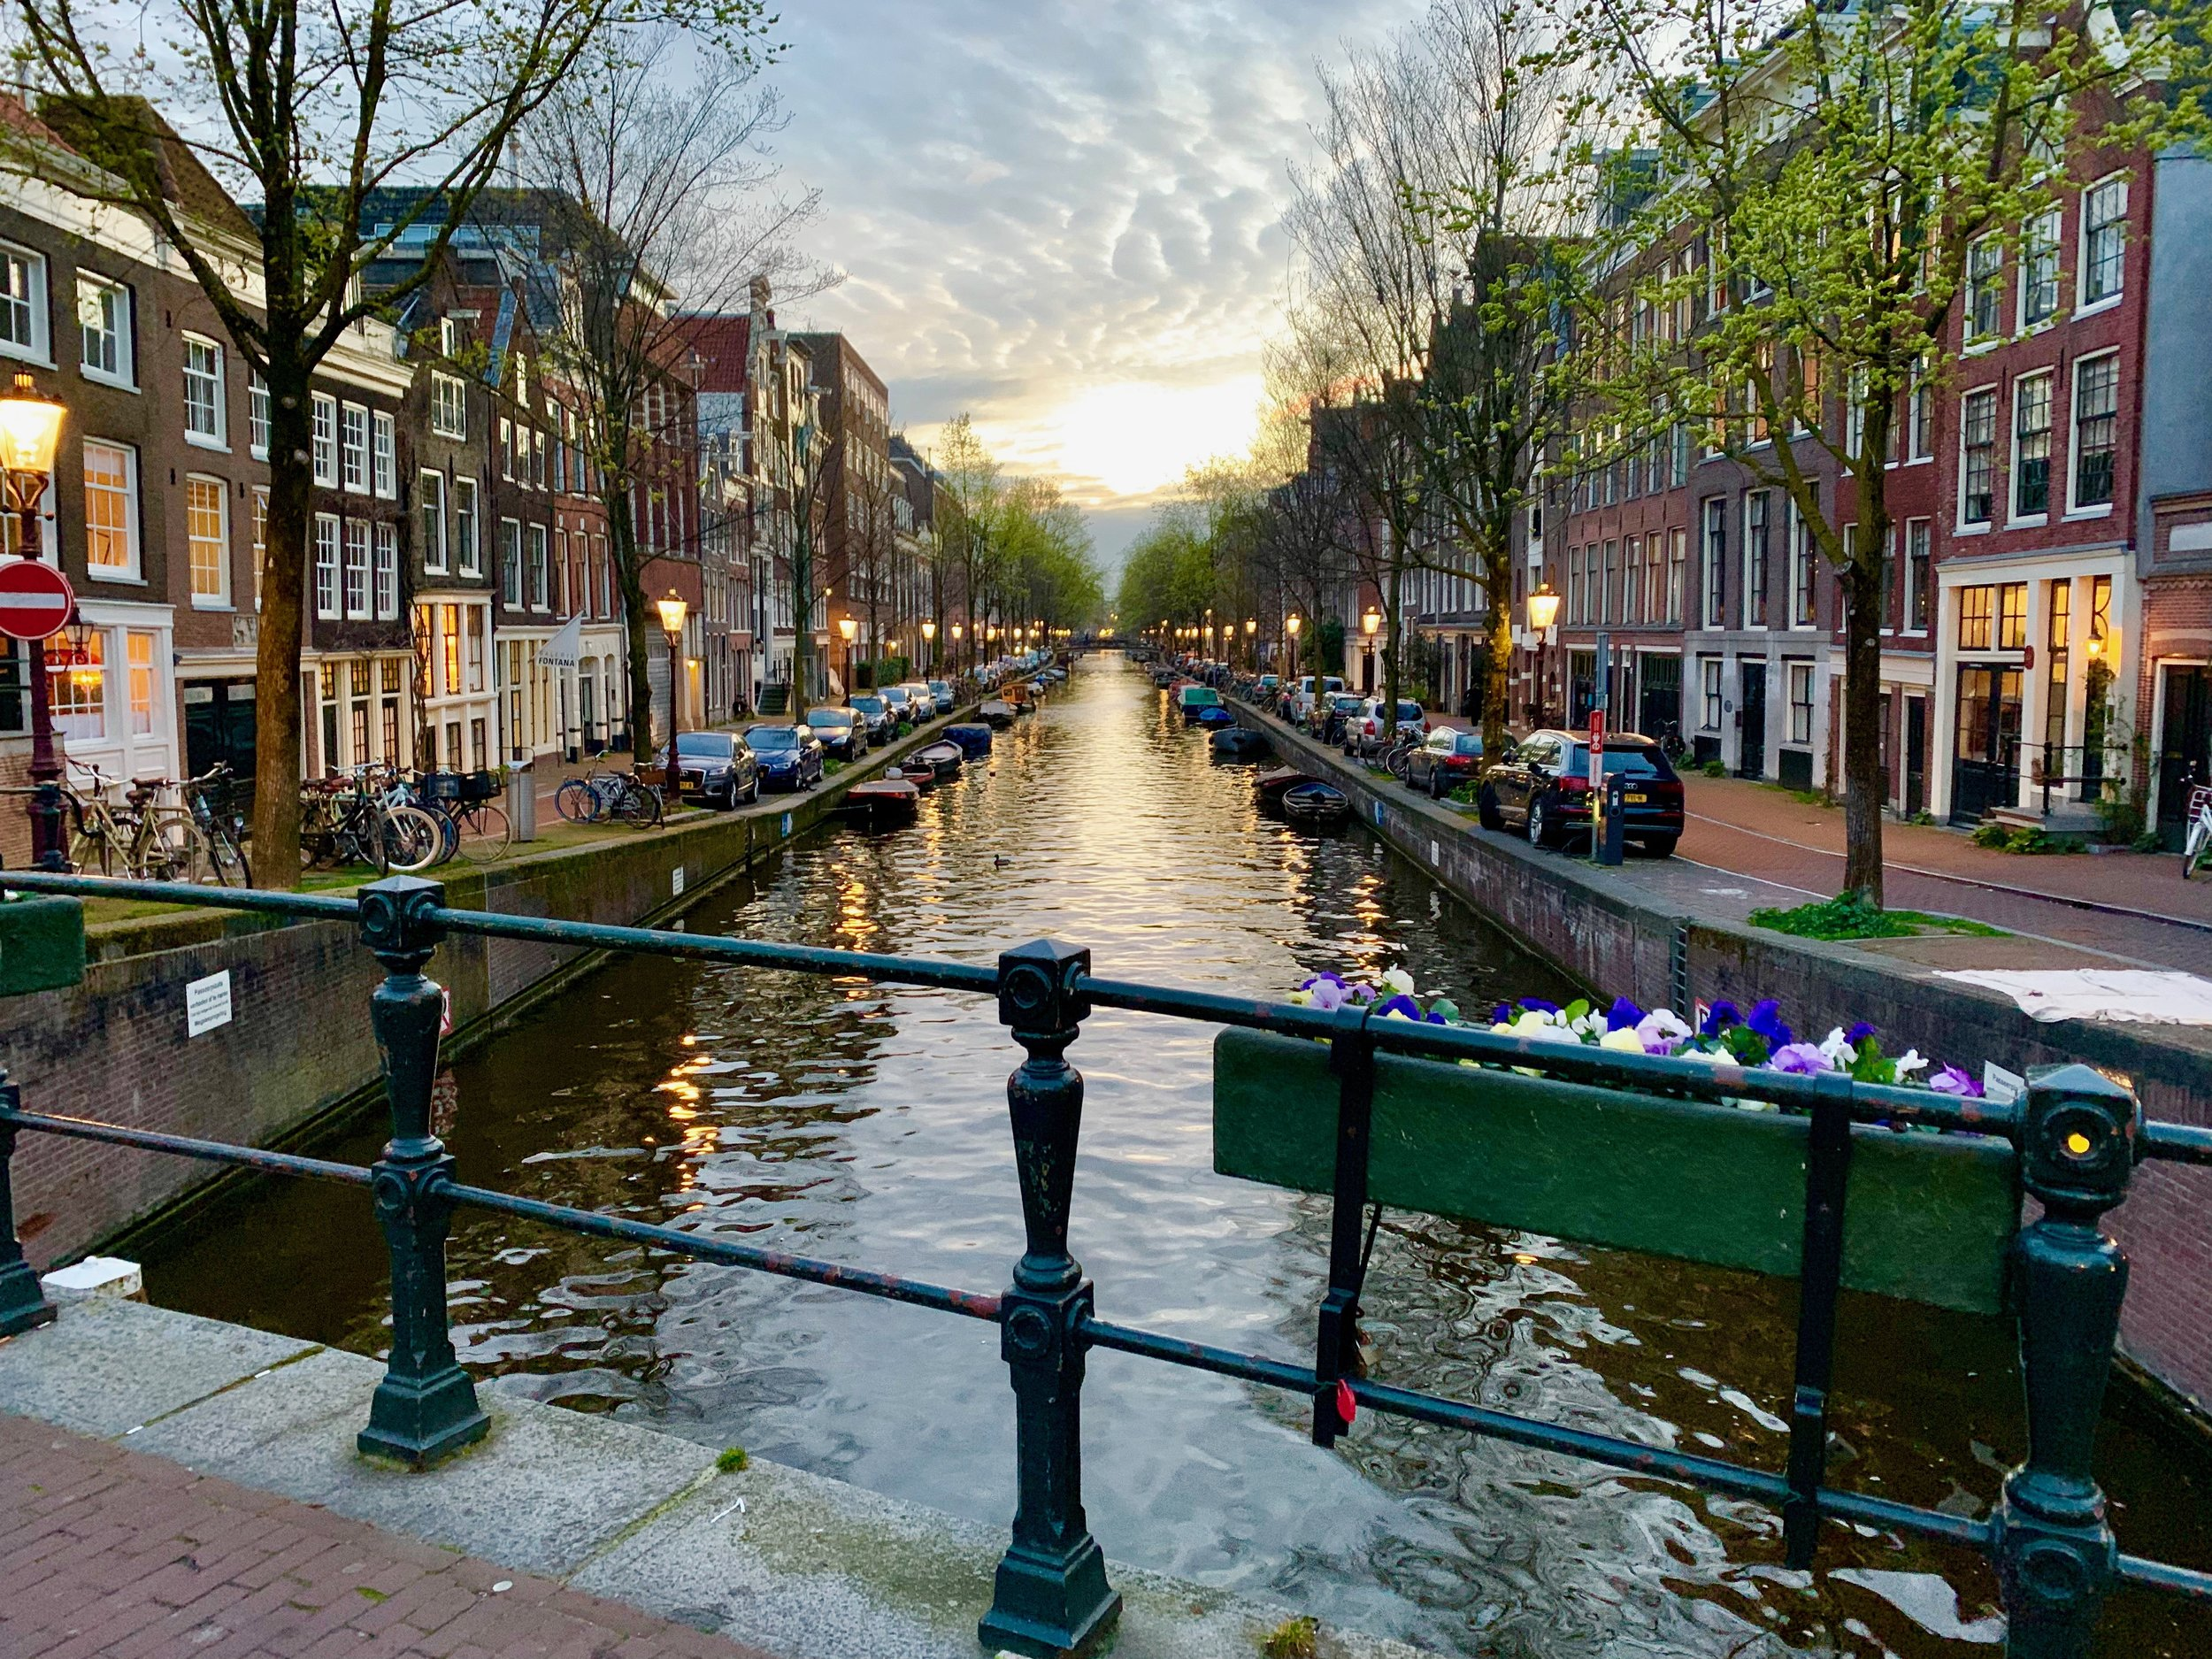 On the canals in Amsterdam